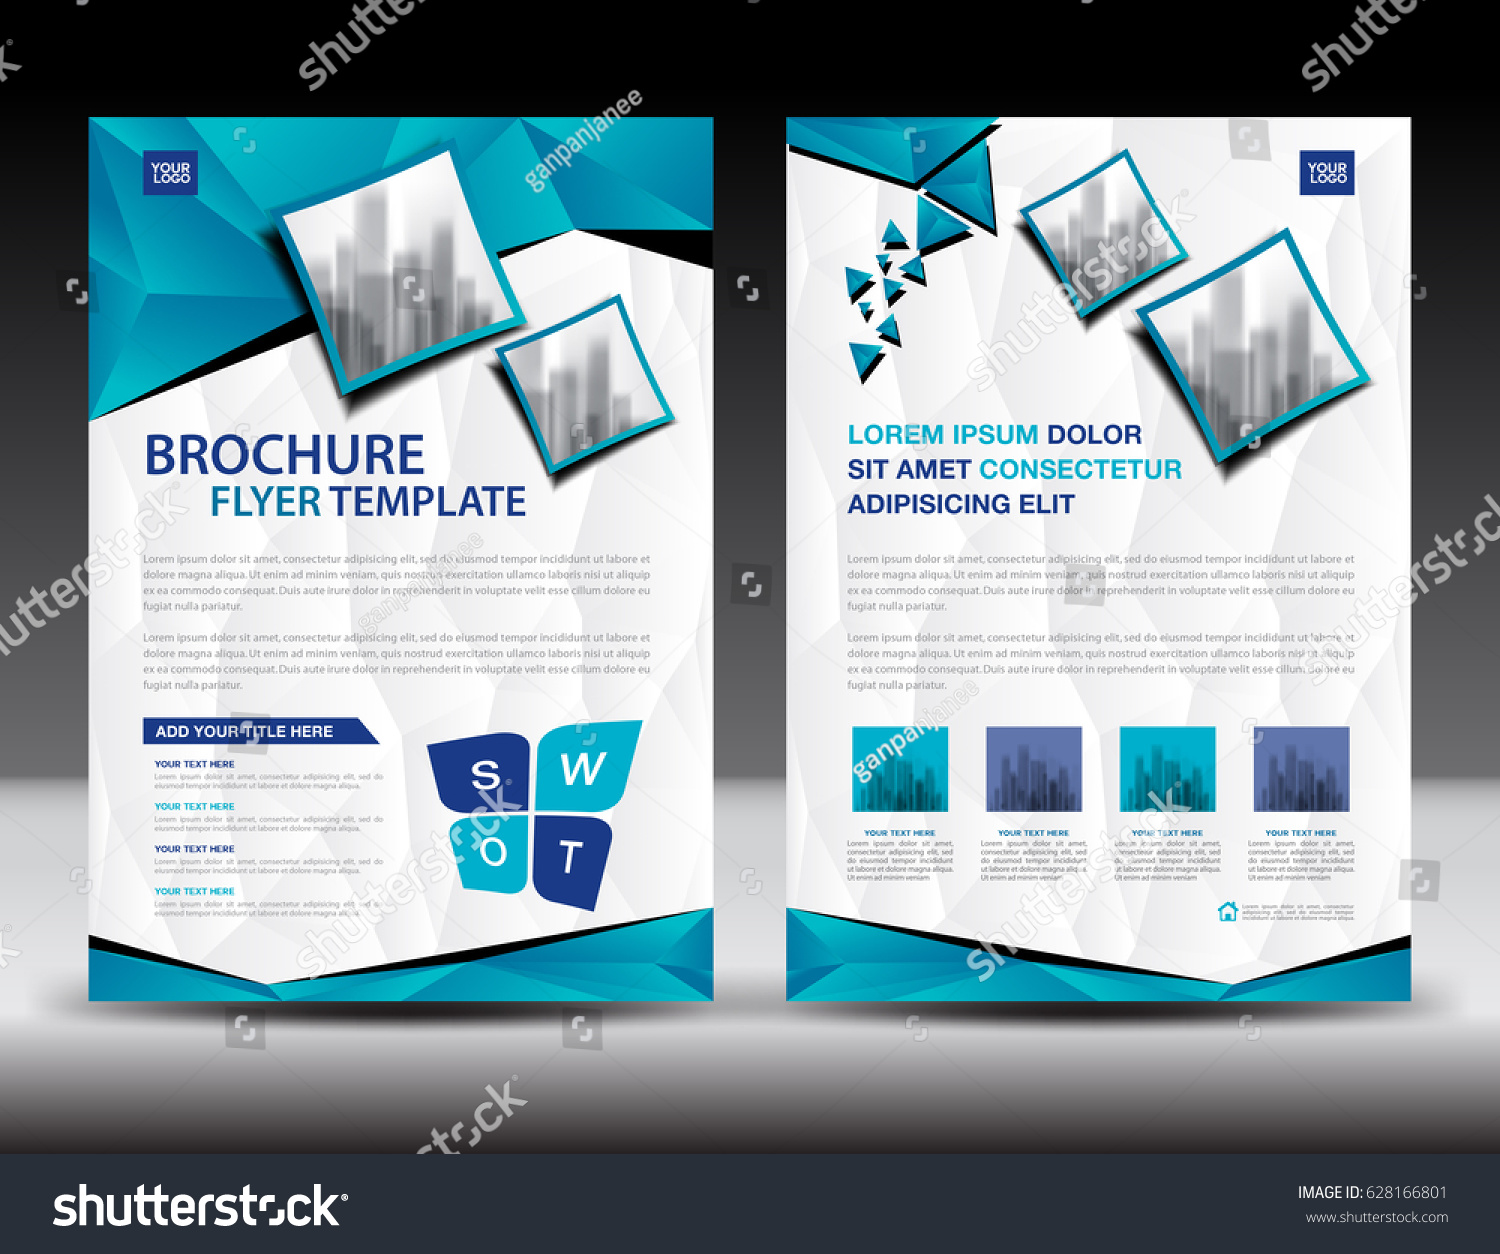 Business Brochure Flyer Templater Blue Cover Stock Vector 628166801 ...